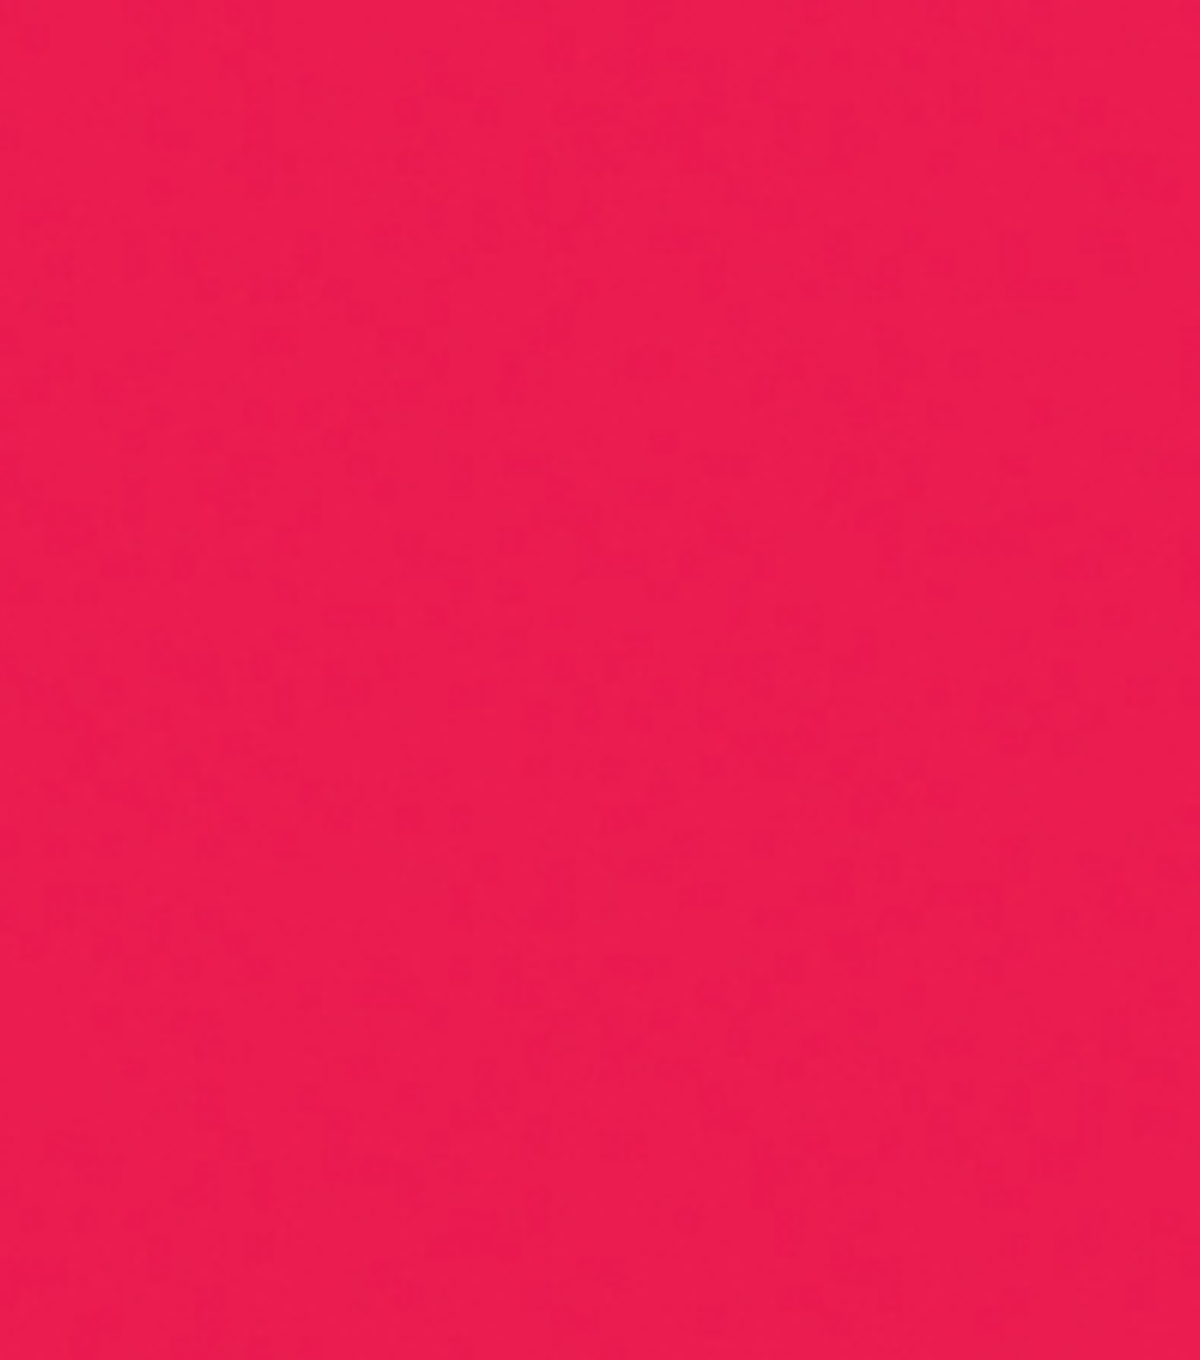 Glass Paint Marker 1Pk, Red